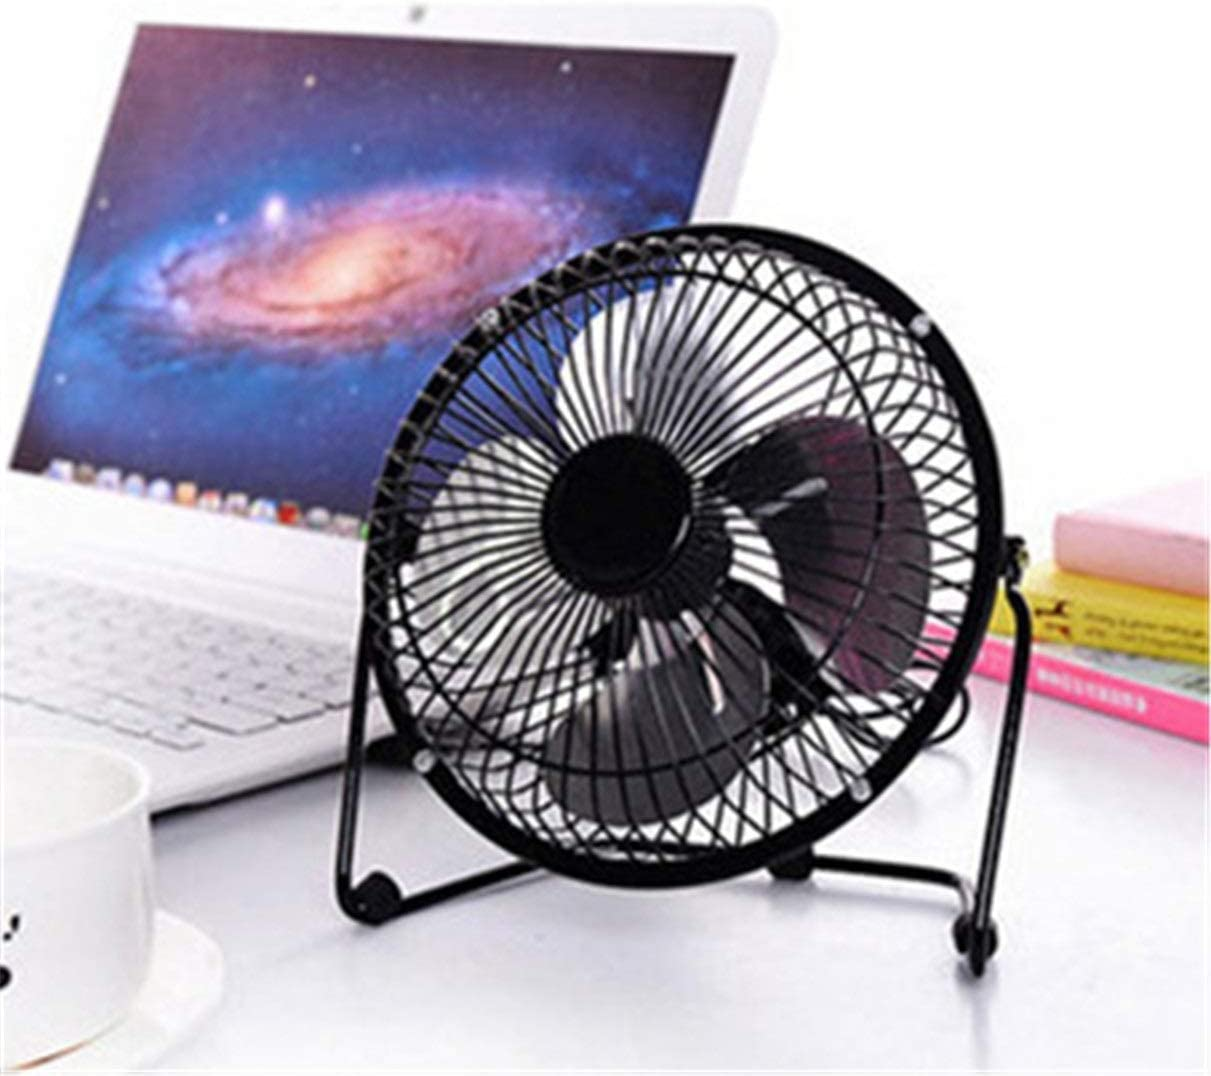 TYUIO Metal Desk Fan Quiet USB Fan for Home Office and School Strong Airflow USB Powered Table Fan